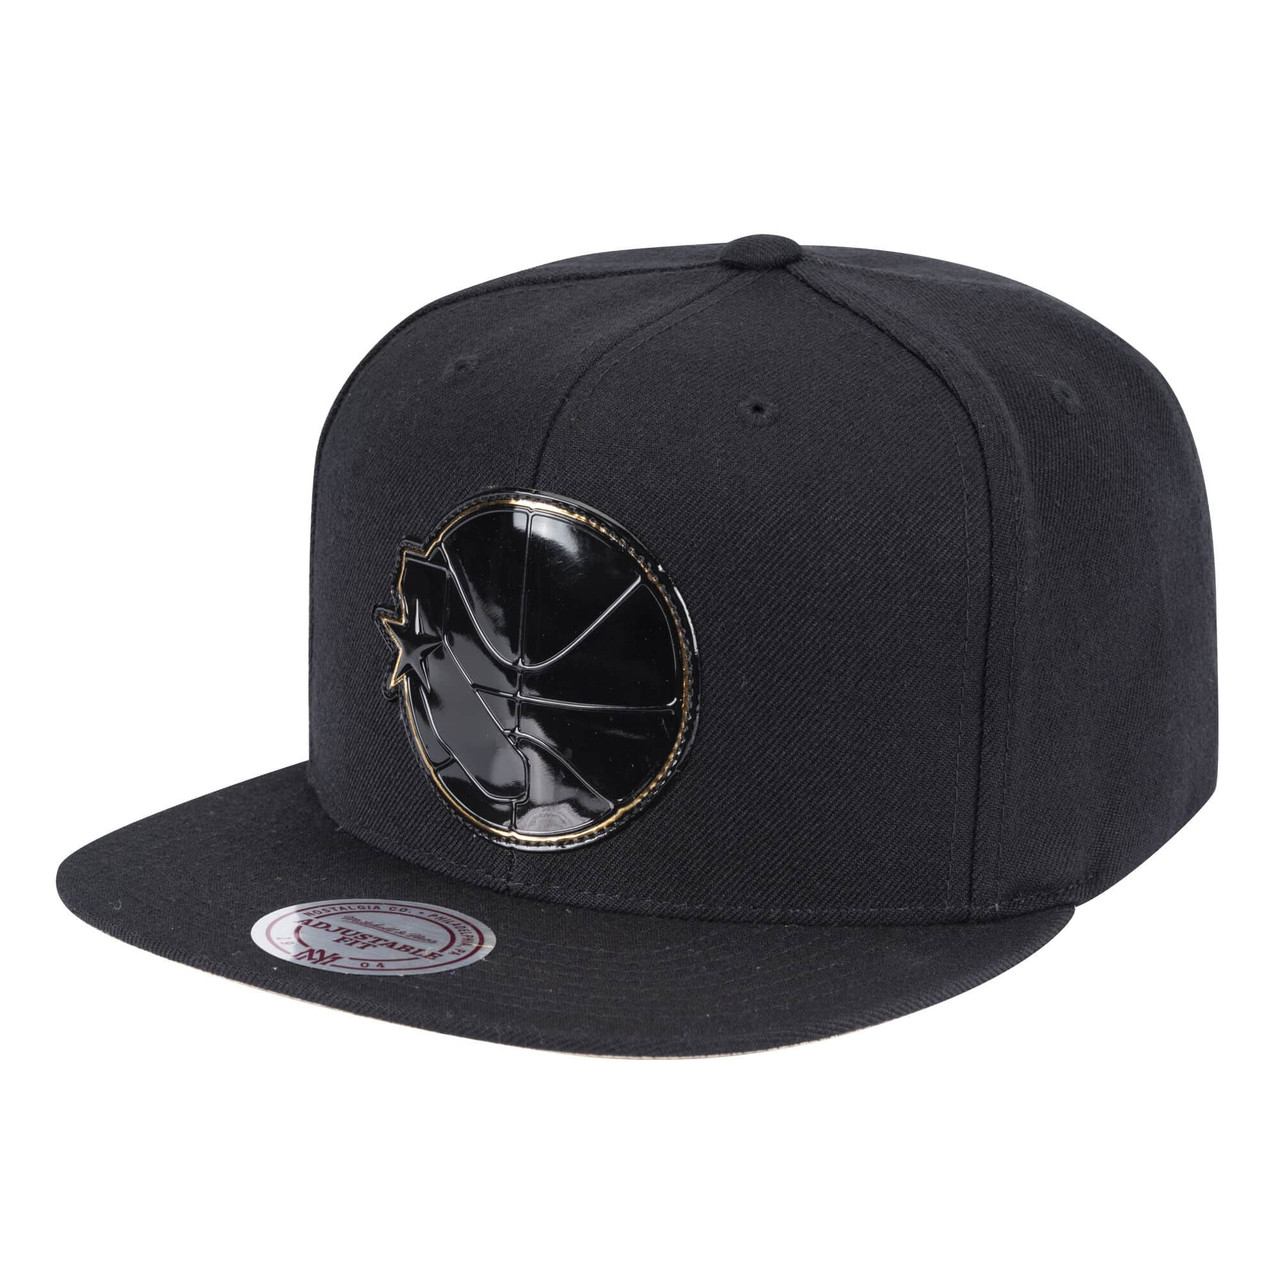 a0df33c20c07c Mitchell & Ness Golden State Warriors Presto Snapback